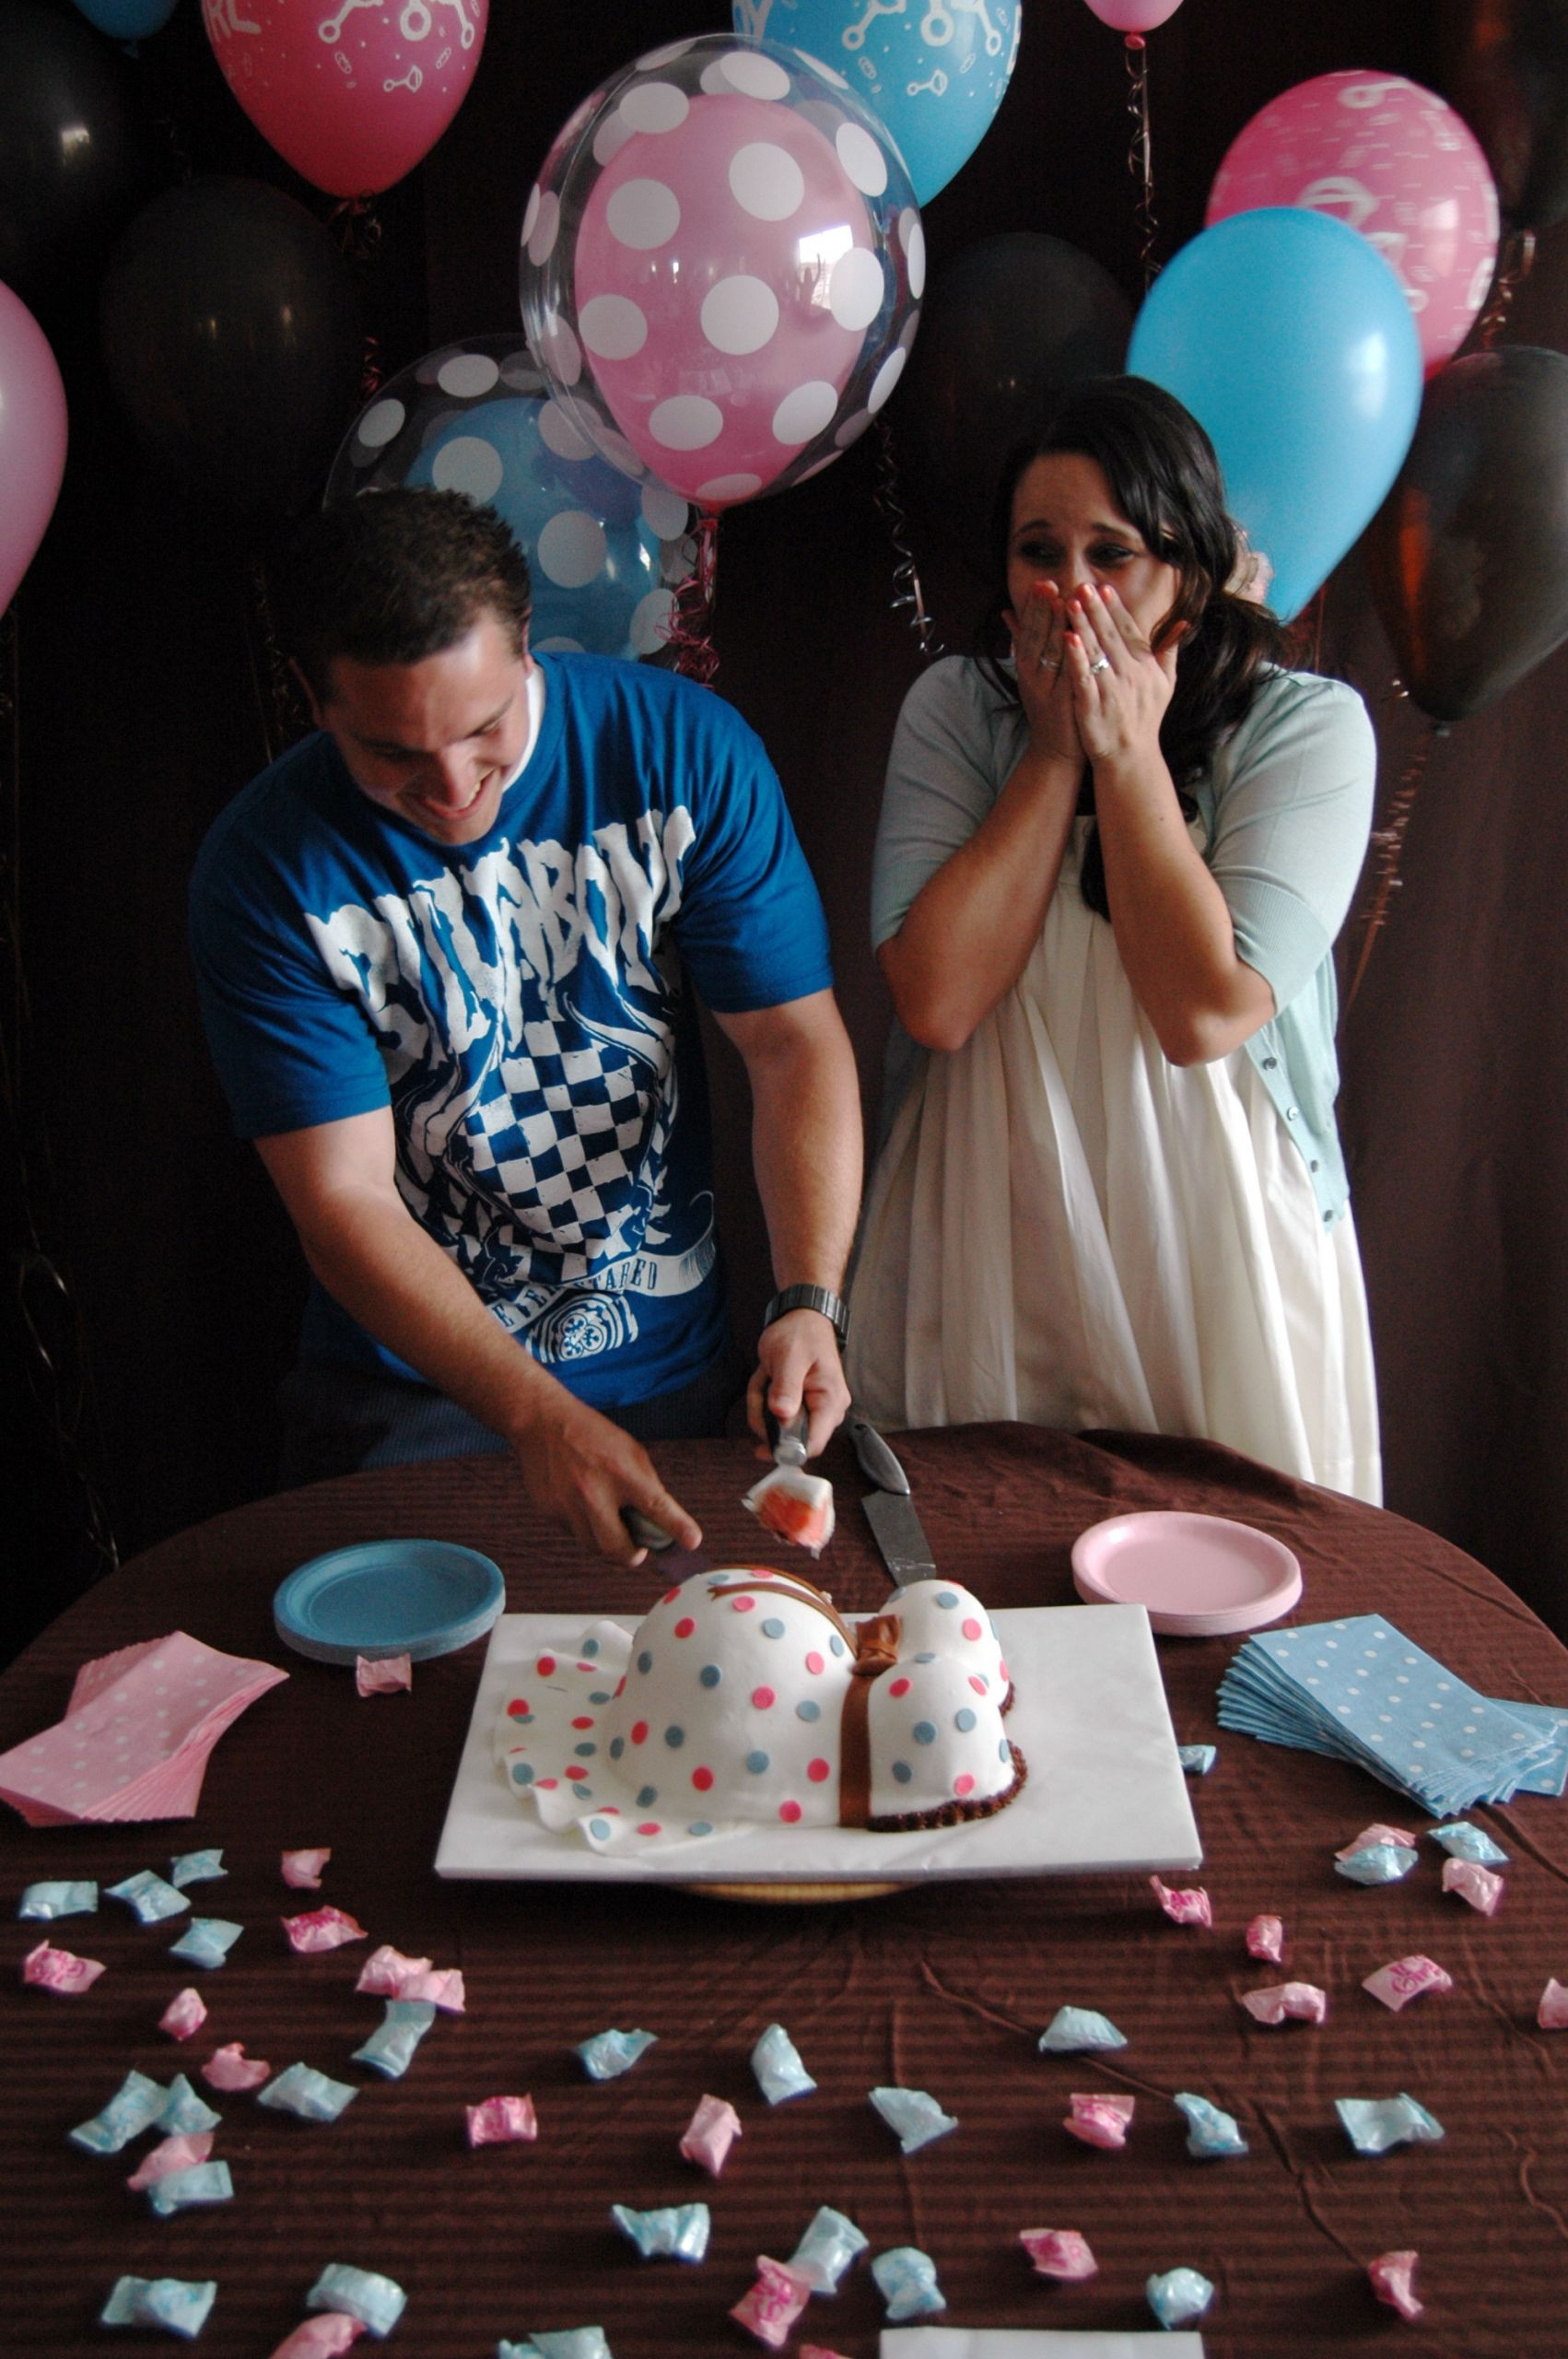 Cute Gender Reveal Party Ideas  Gender Reveal Party Part II